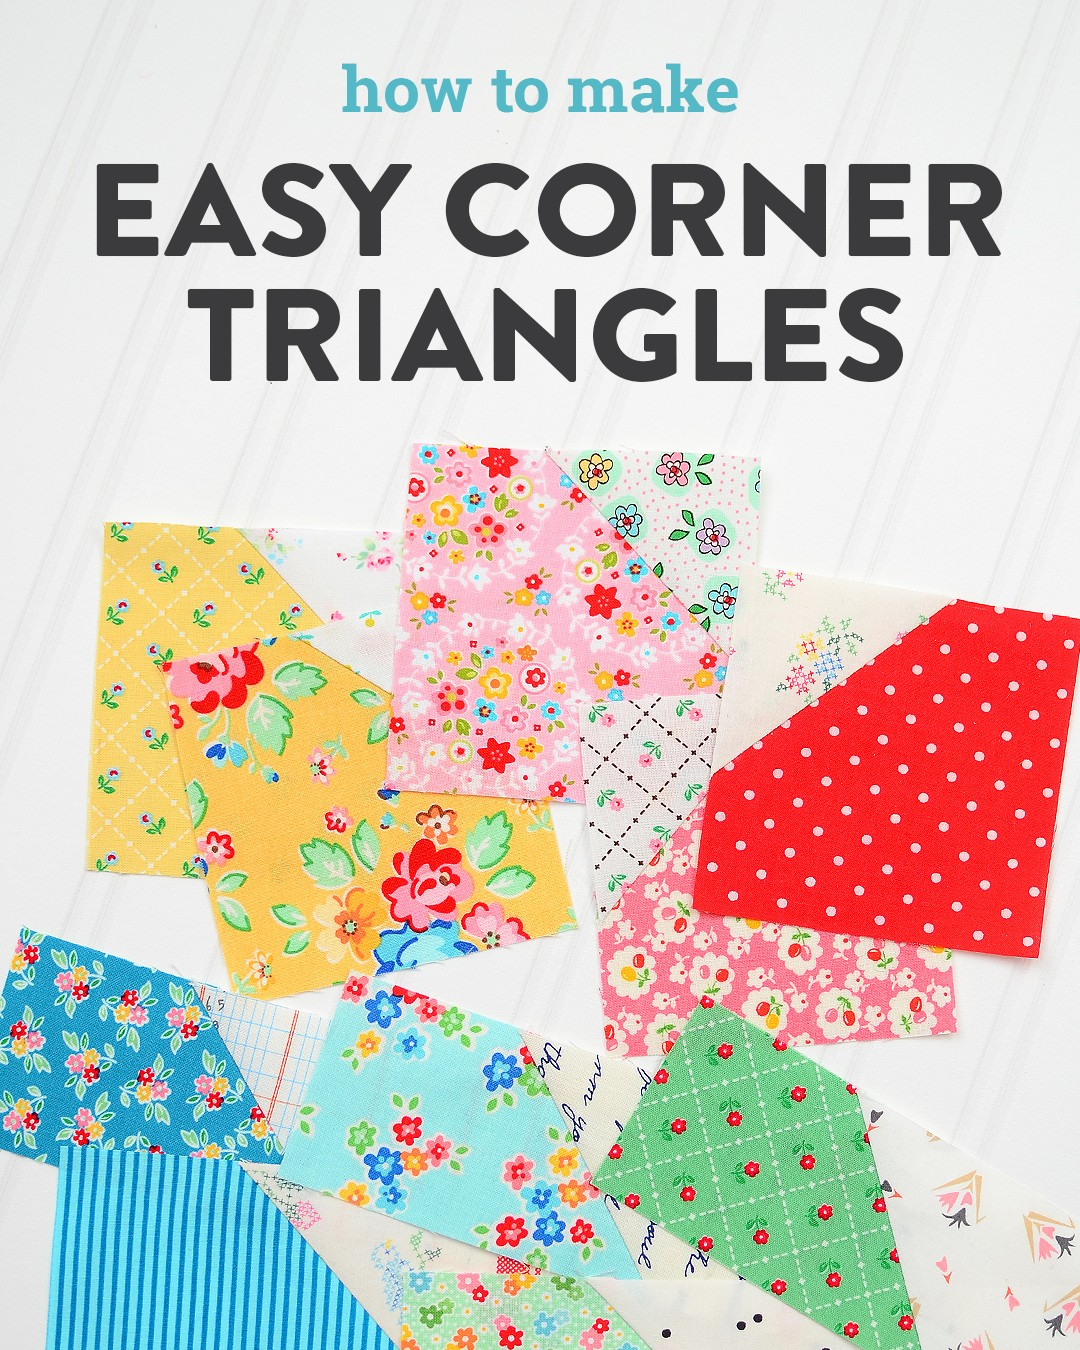 Quilt blocks with Easy Corner Triangles